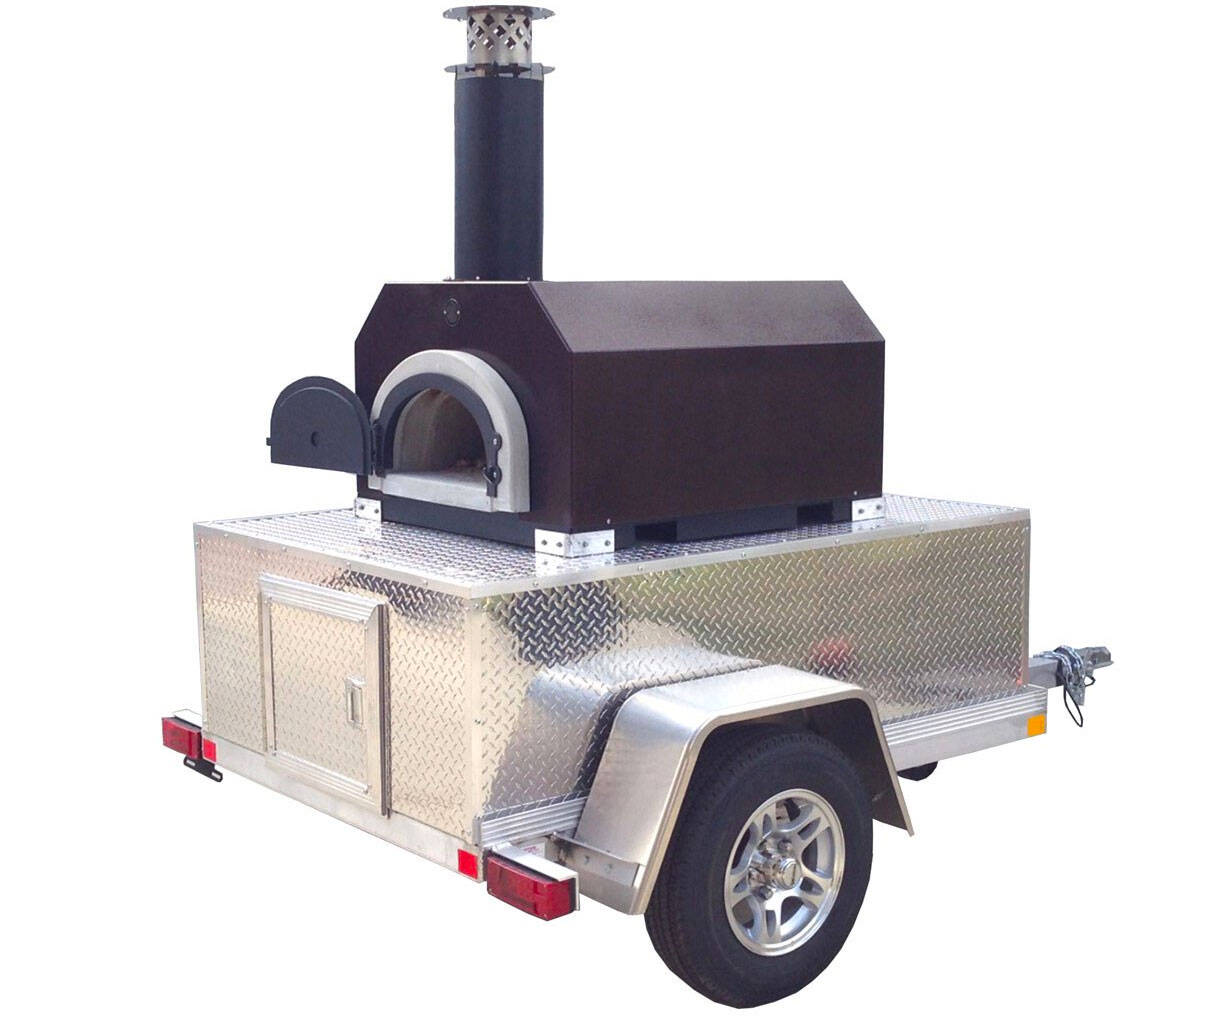 The Tailgate Mobile Outdoor Pizza Oven - http://coolthings.us